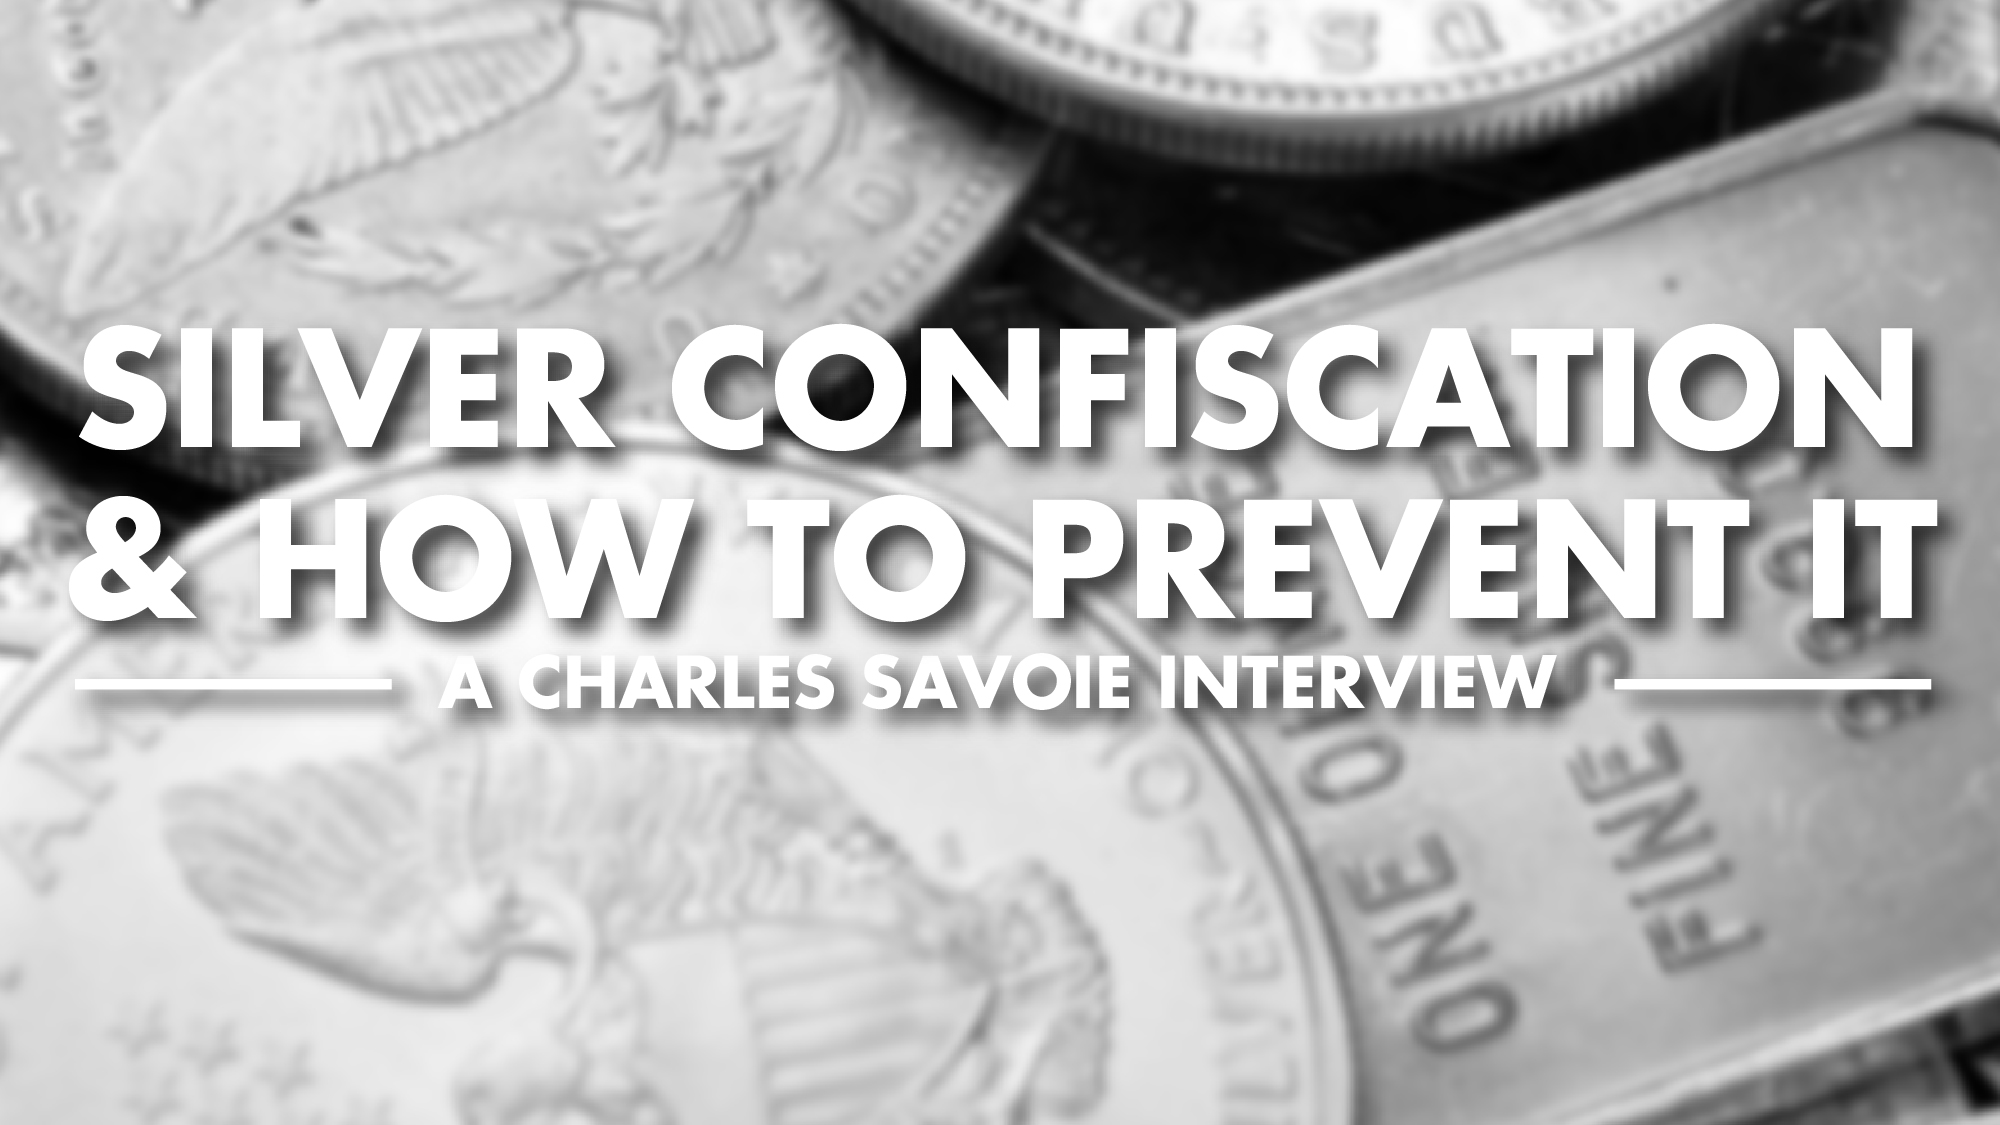 Silver Confiscation & How to Prevent It – Charles Savoie Interview